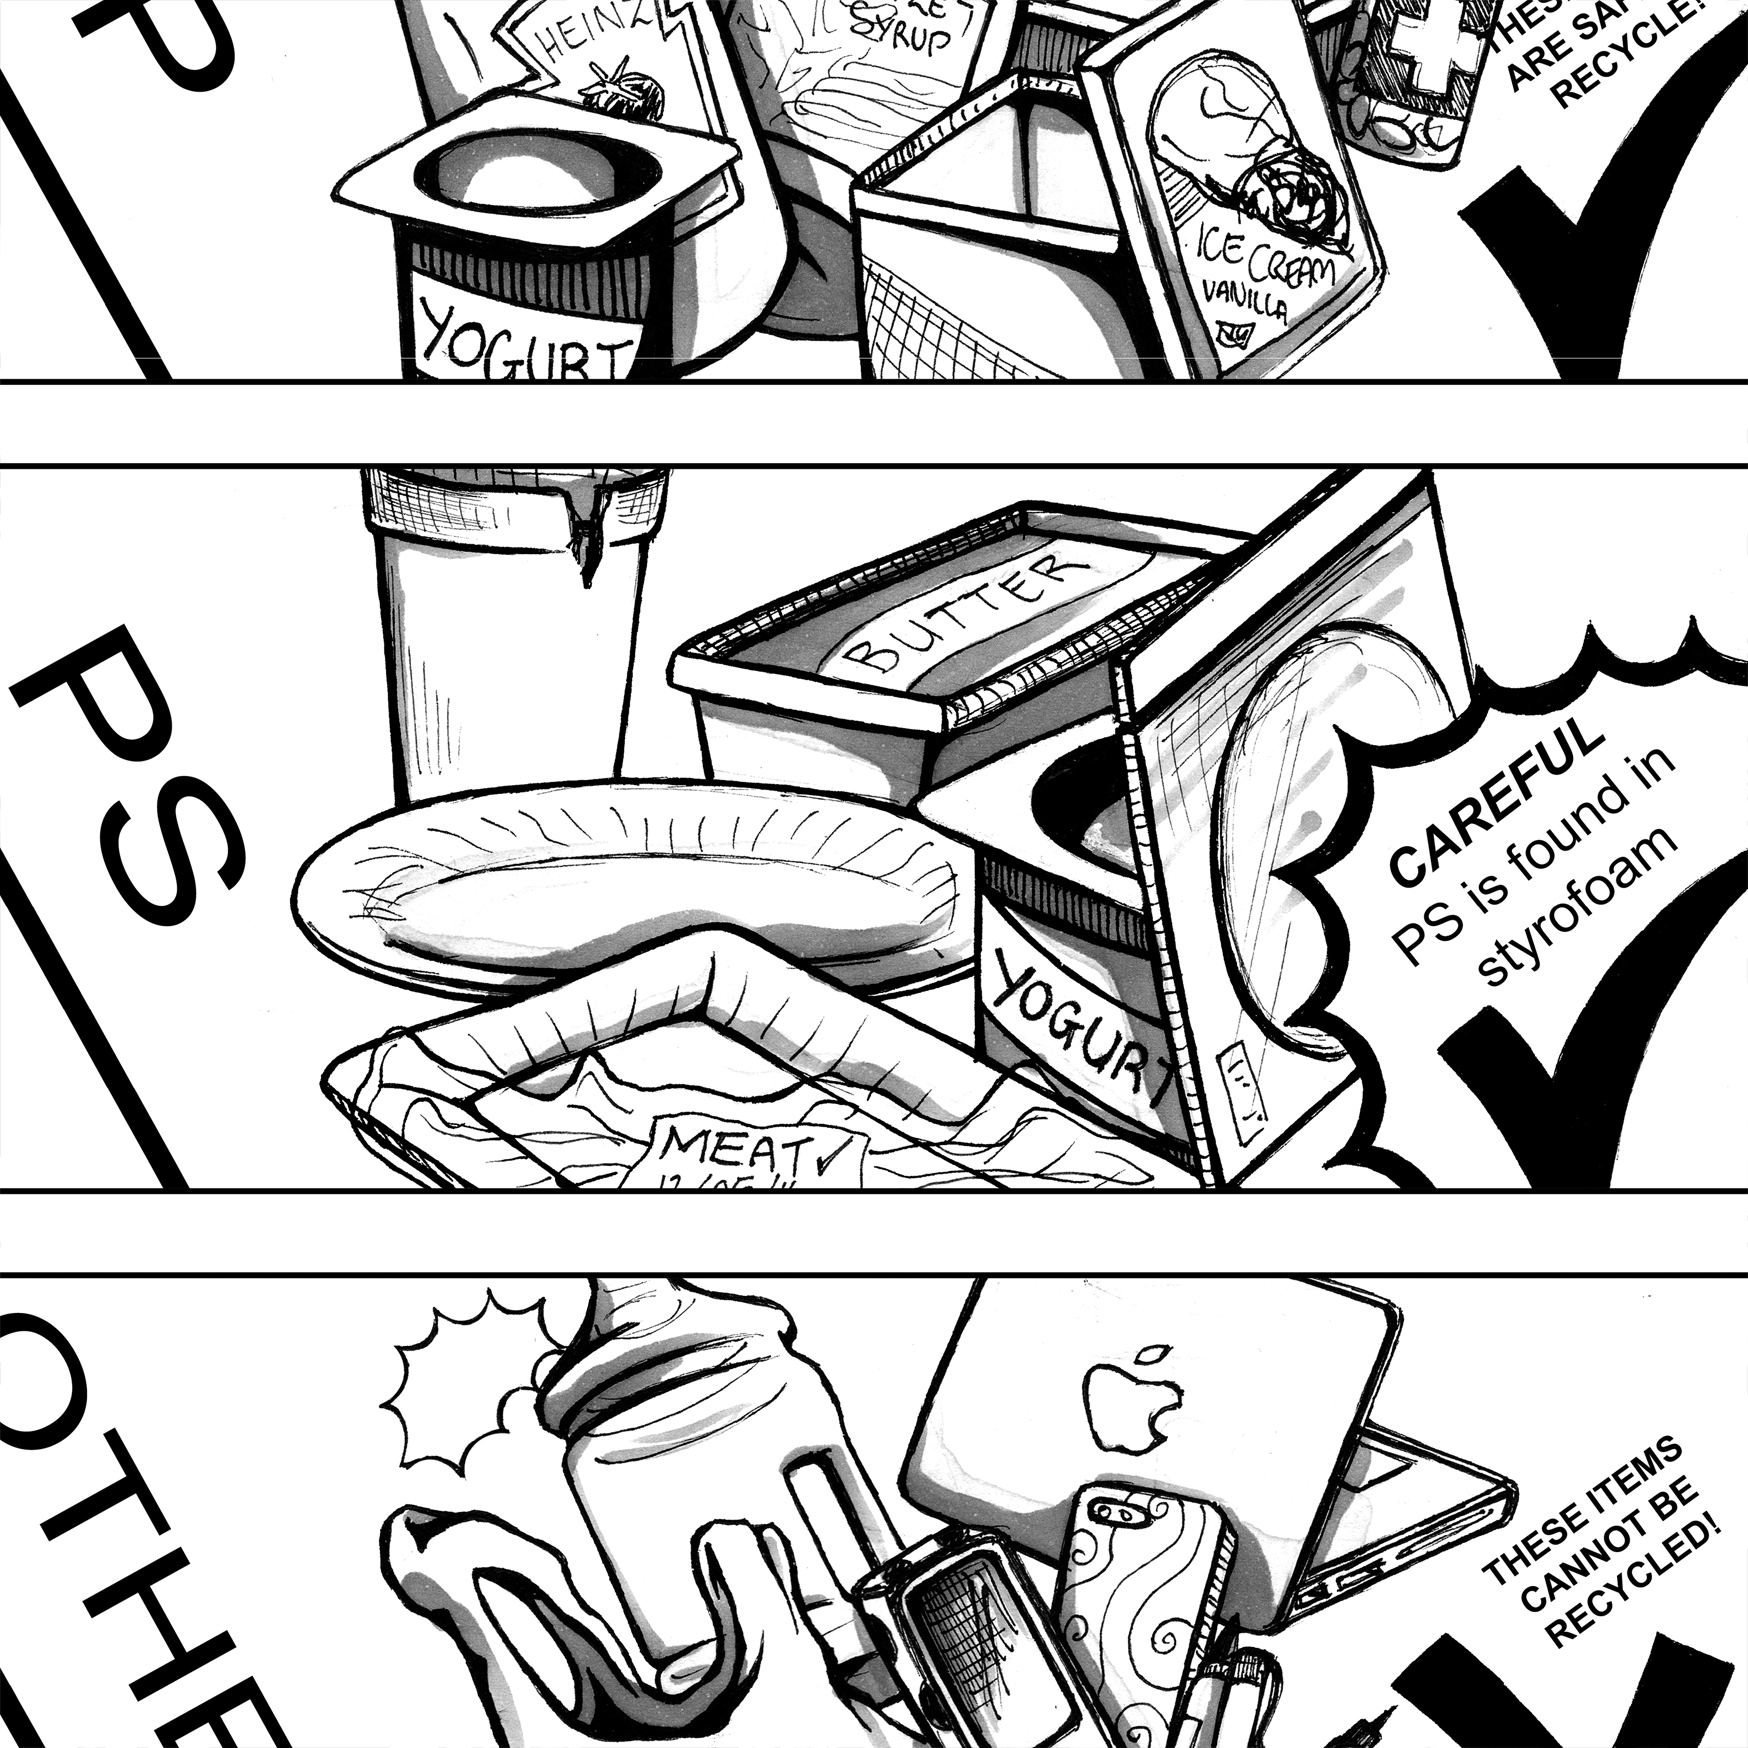 There Are Better Ways 2 Recycle (page 5)